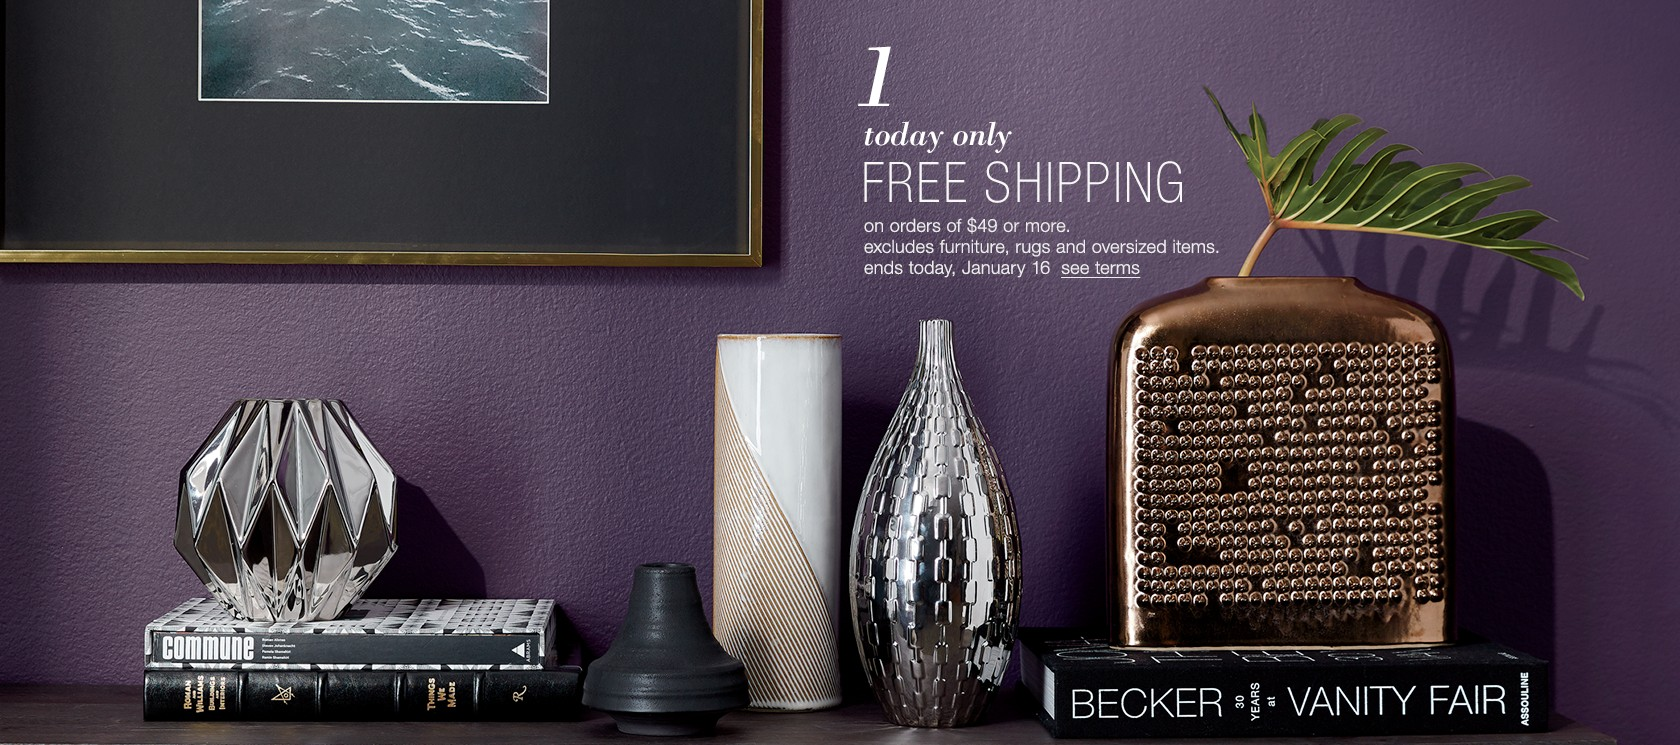 free shipping on orders of $49 or more.excludes furniture, rugs and oversized items.